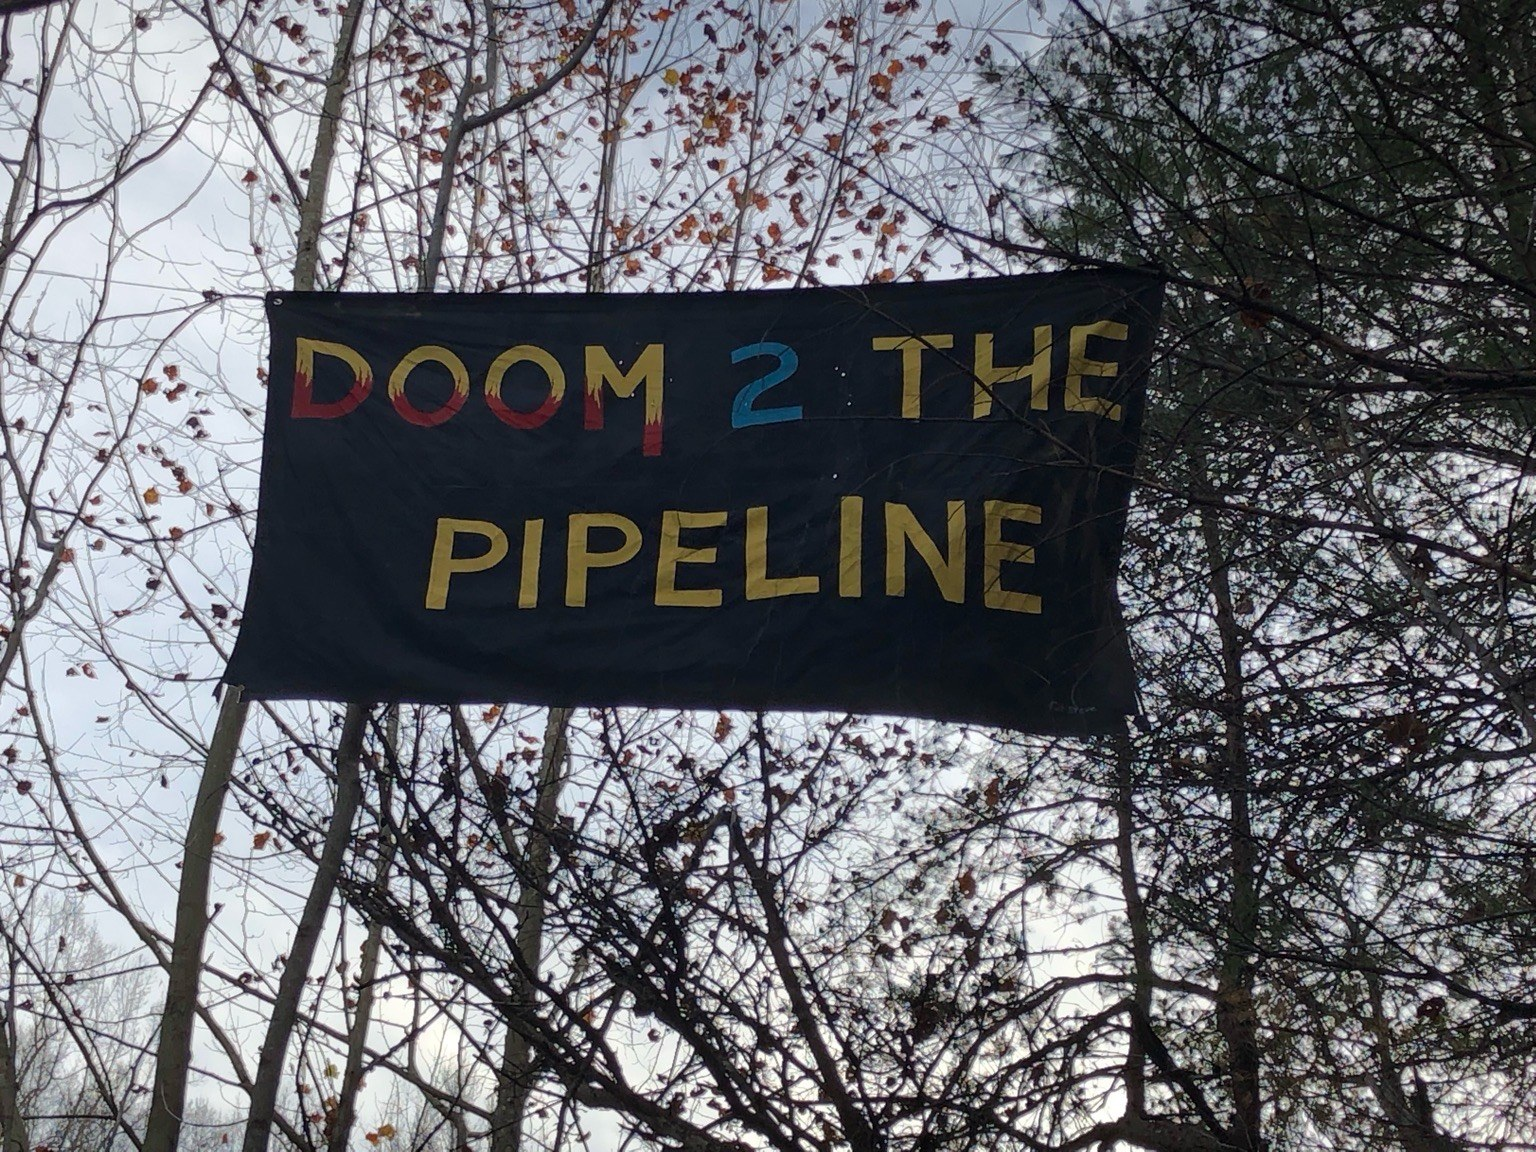 Doom 2 the Pipeline banner